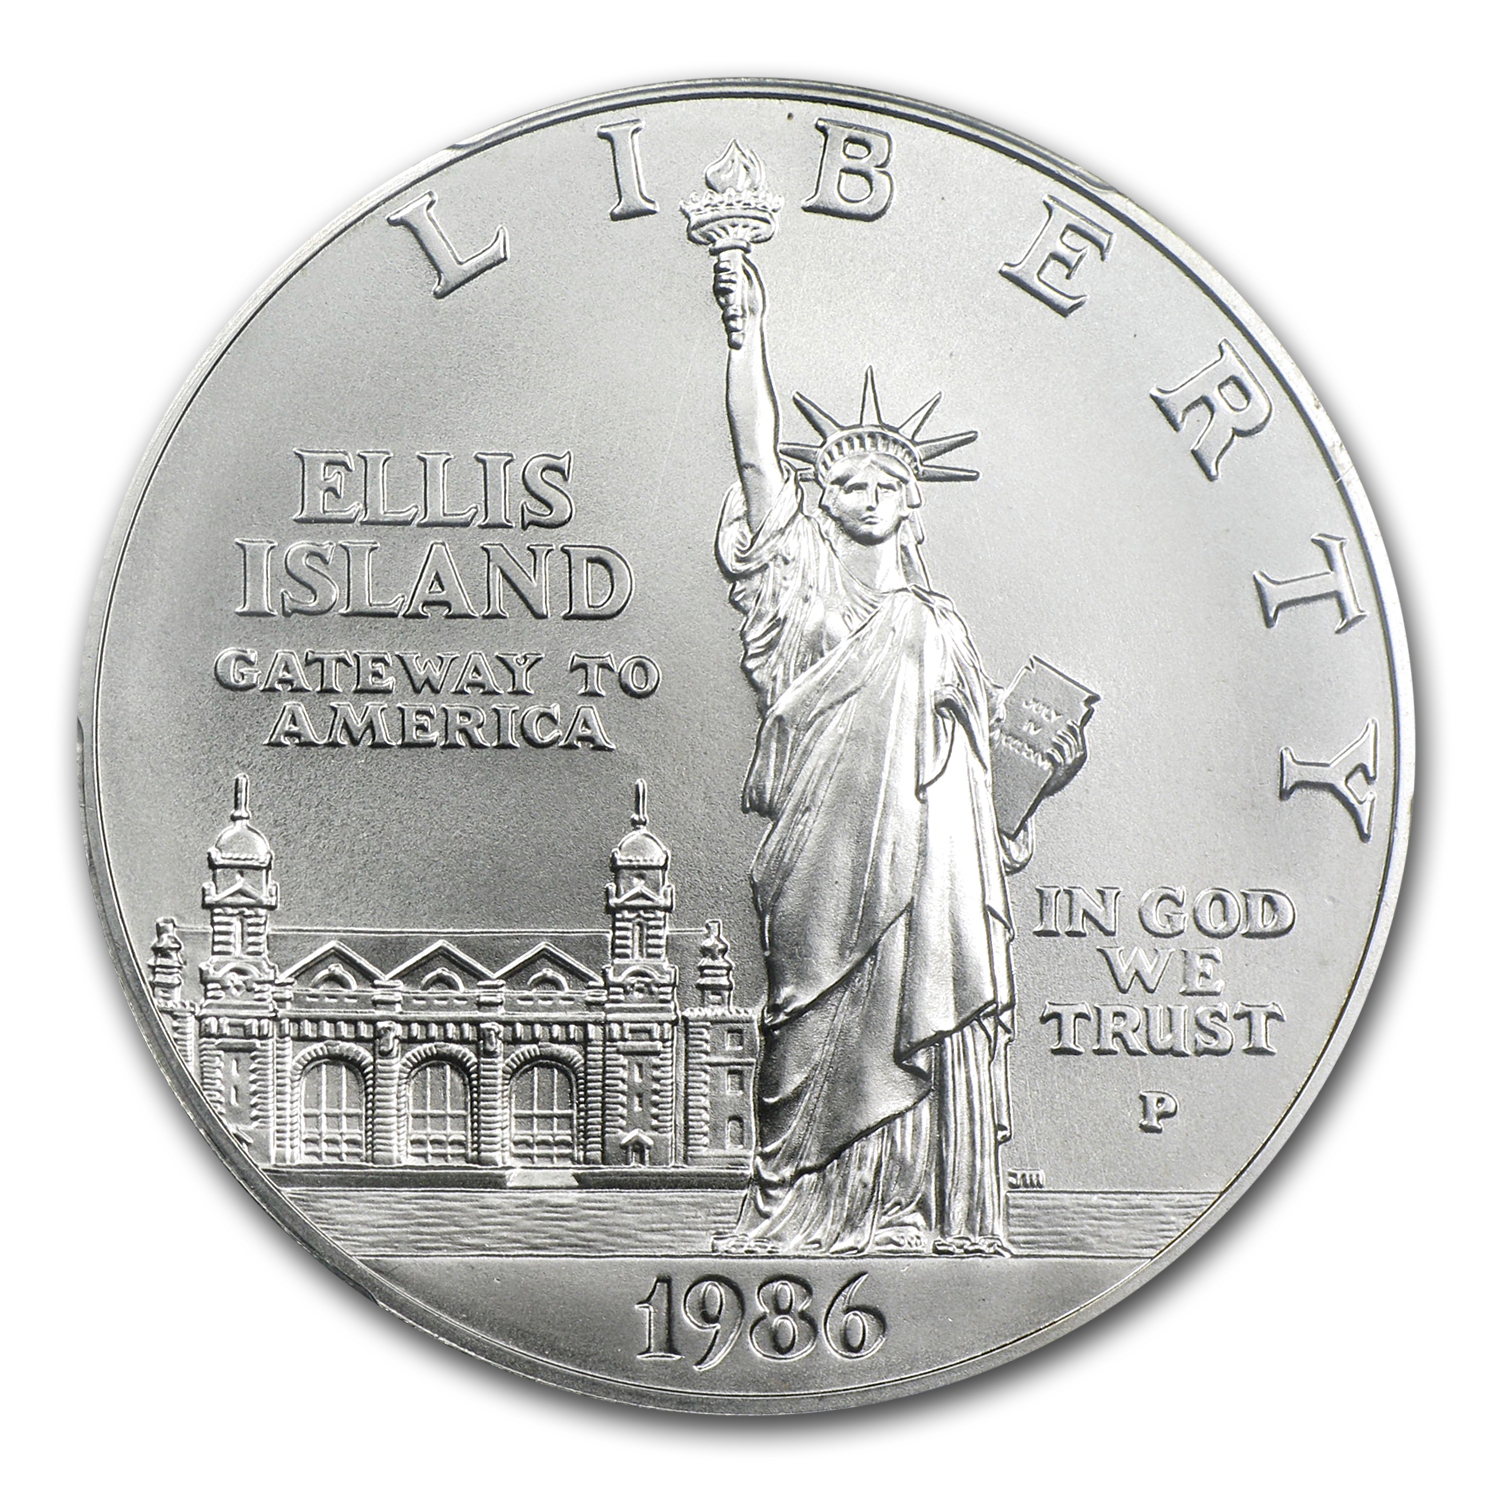 1986-P Statue of Liberty $1 Silver Commemorative - MS-70 PCGS